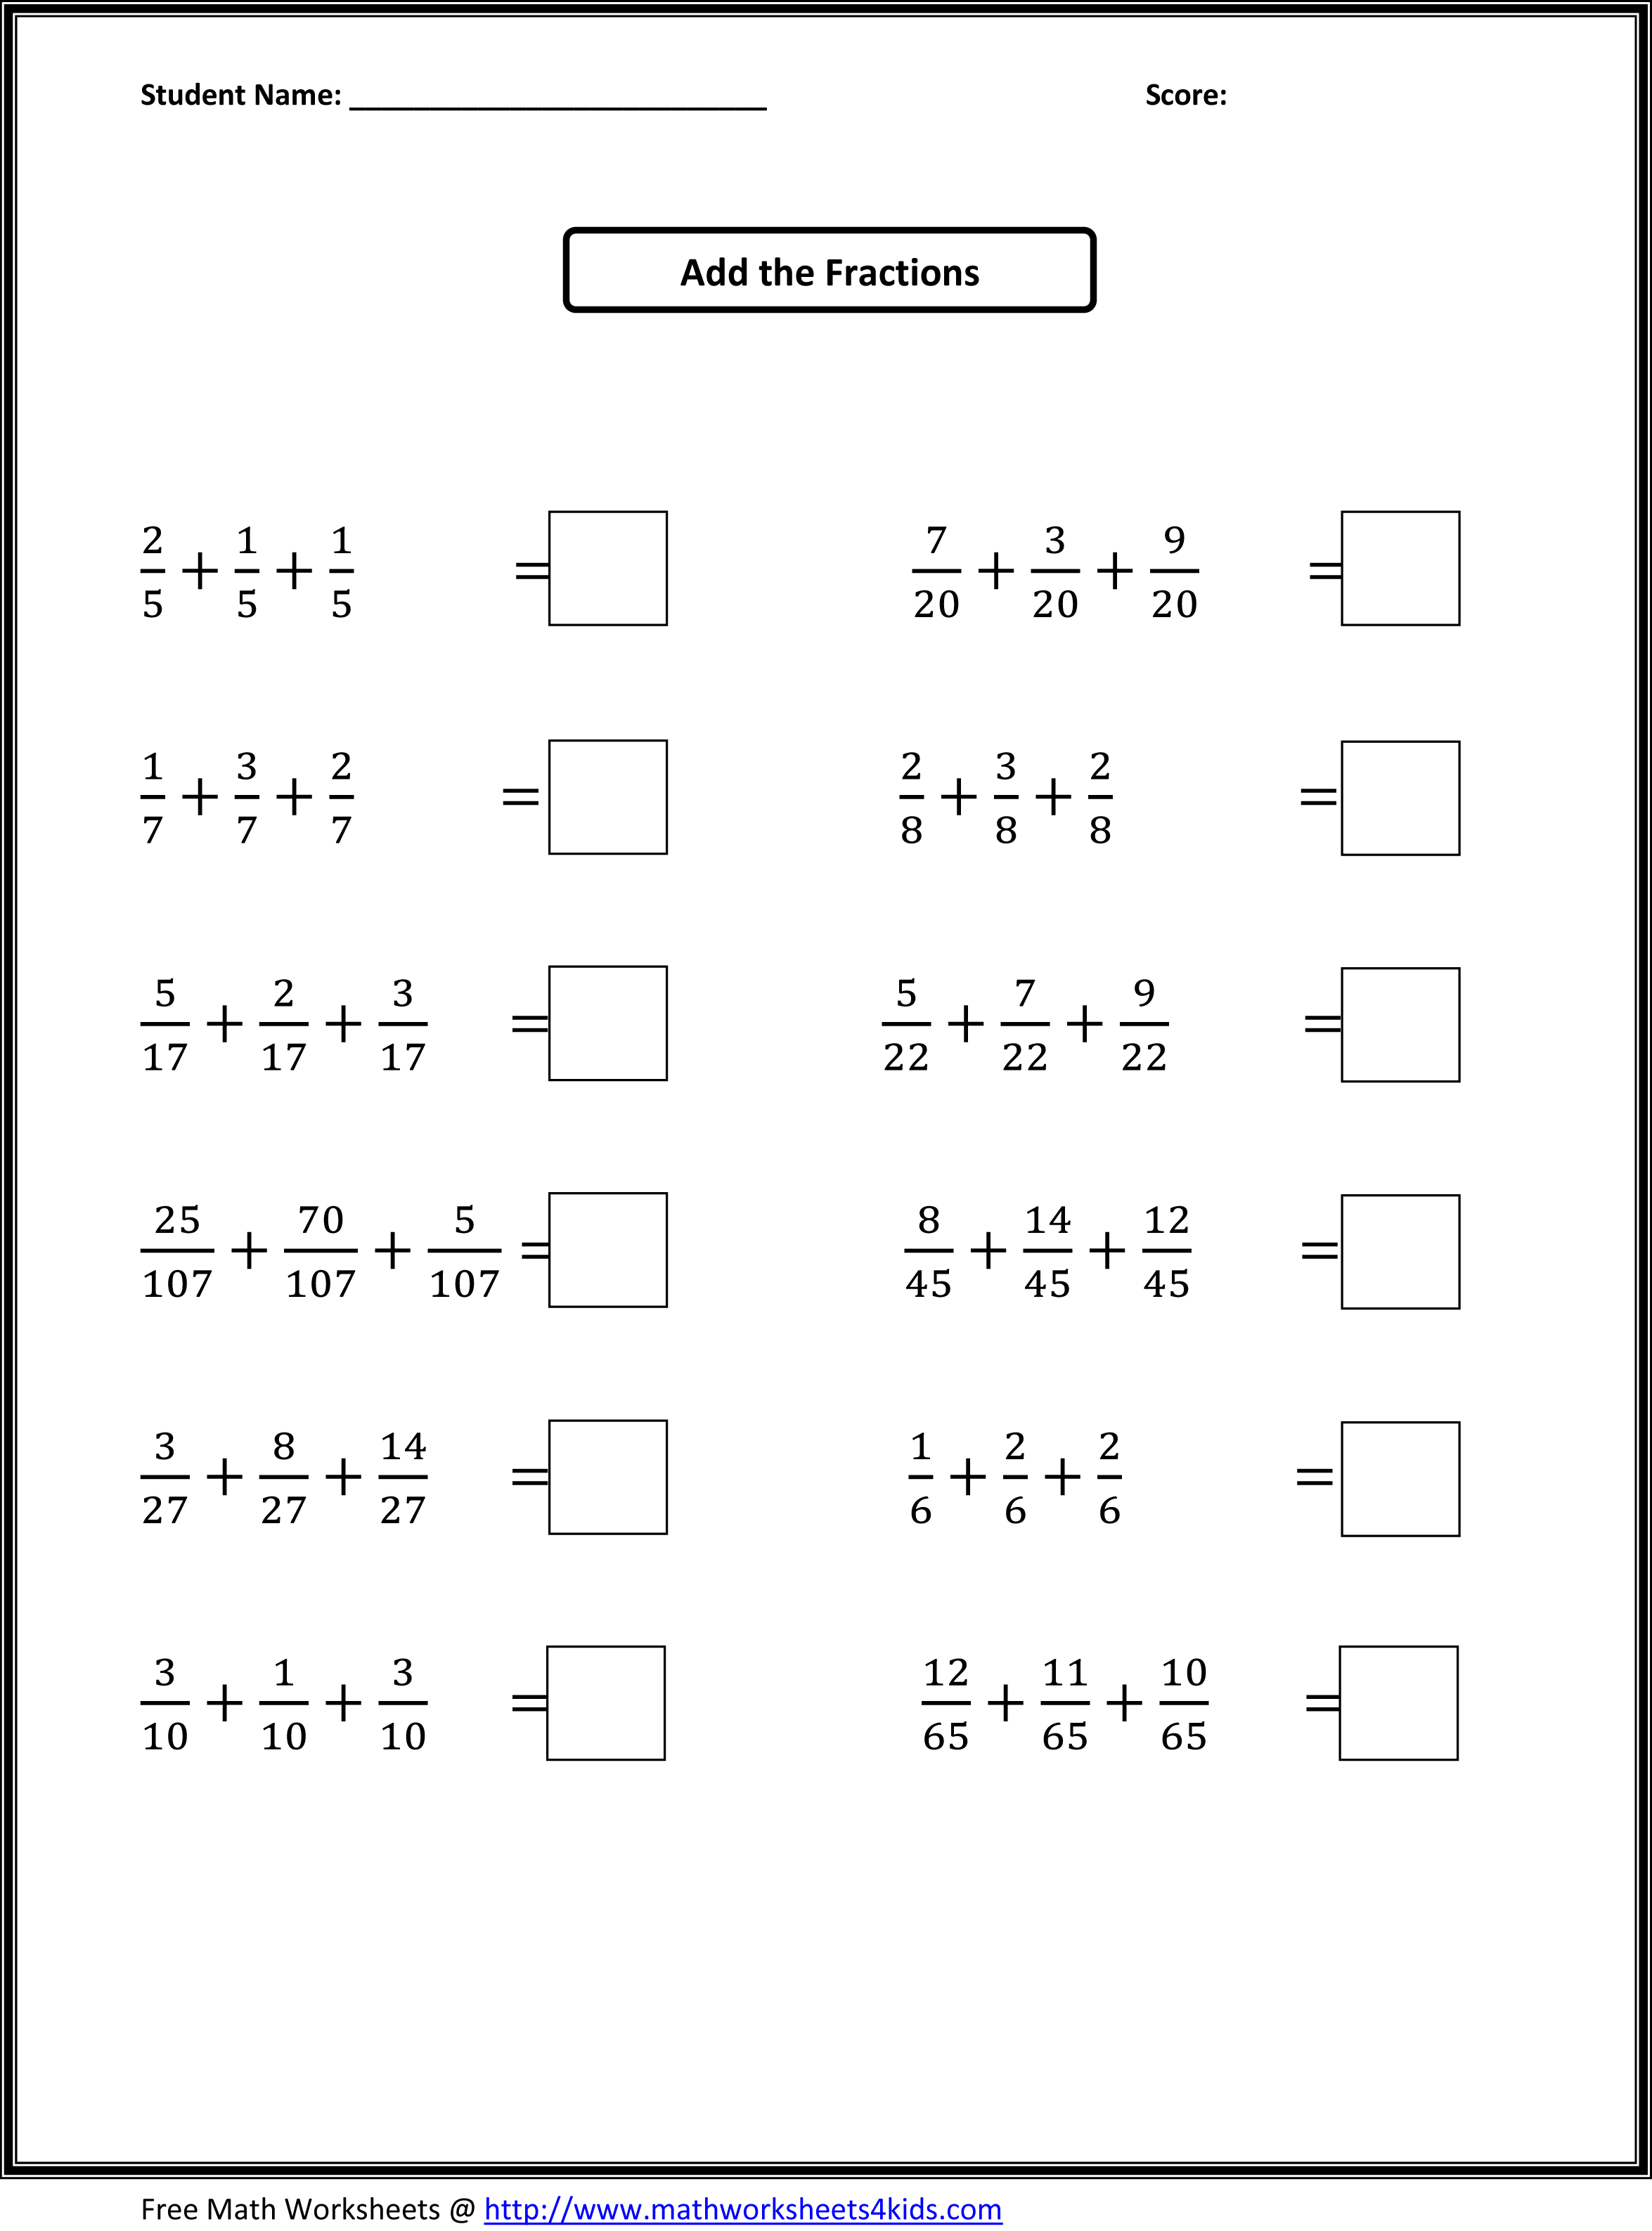 math worksheet : high quality multiplying fractions worksheets grade 7 photos : Fraction Worksheets 7th Grade